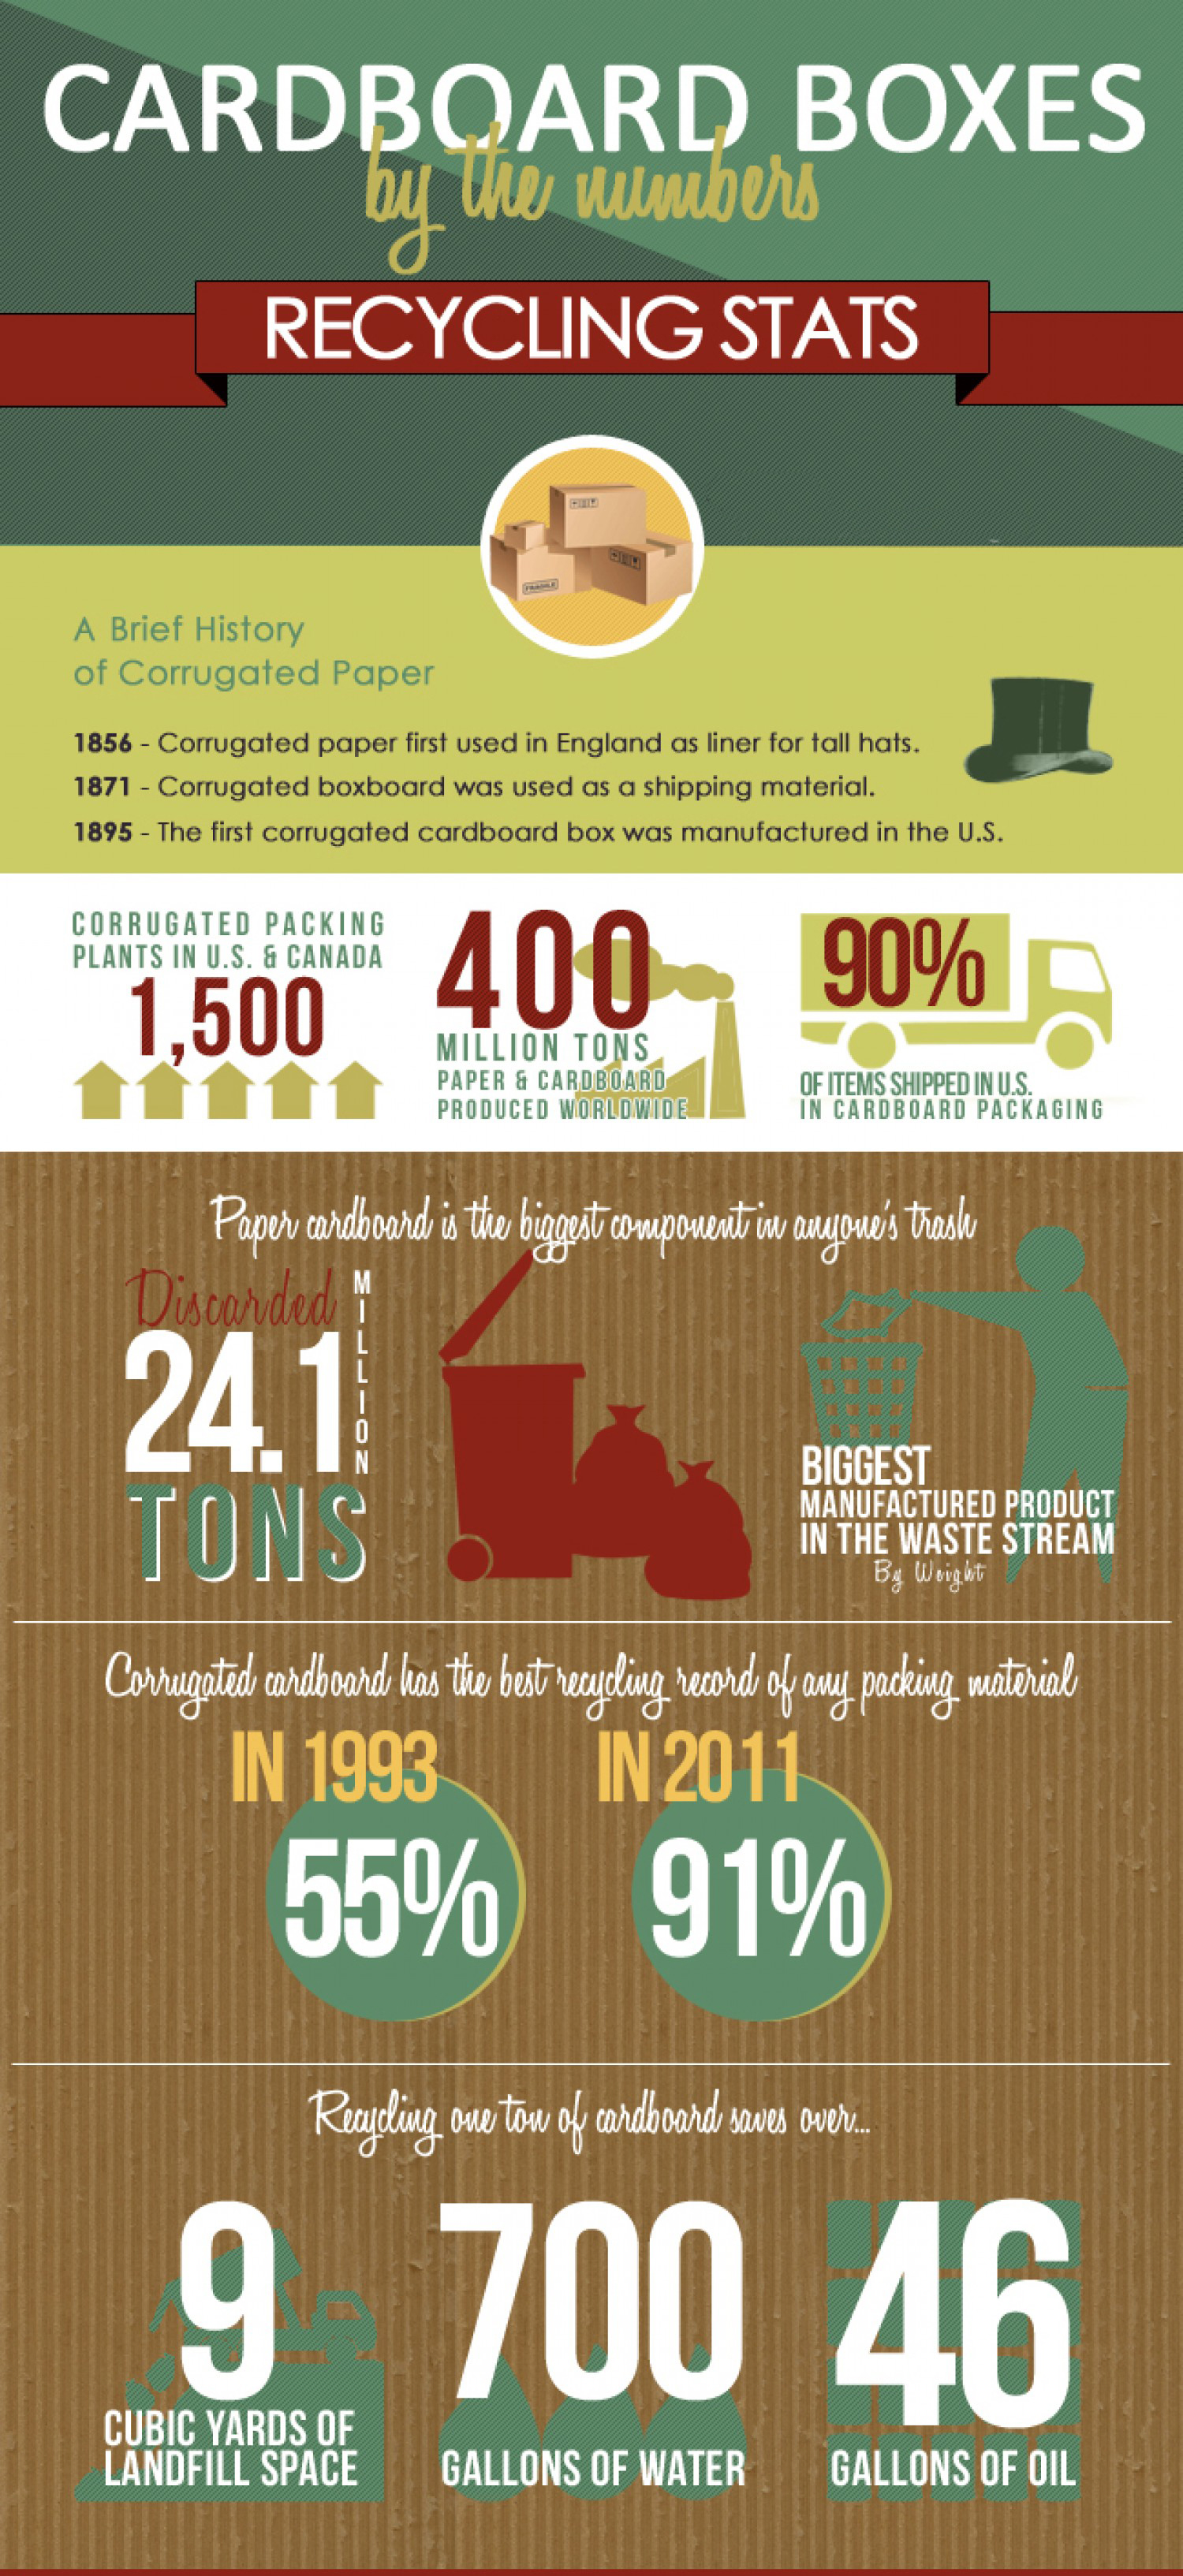 Cardboard Recycling Facts